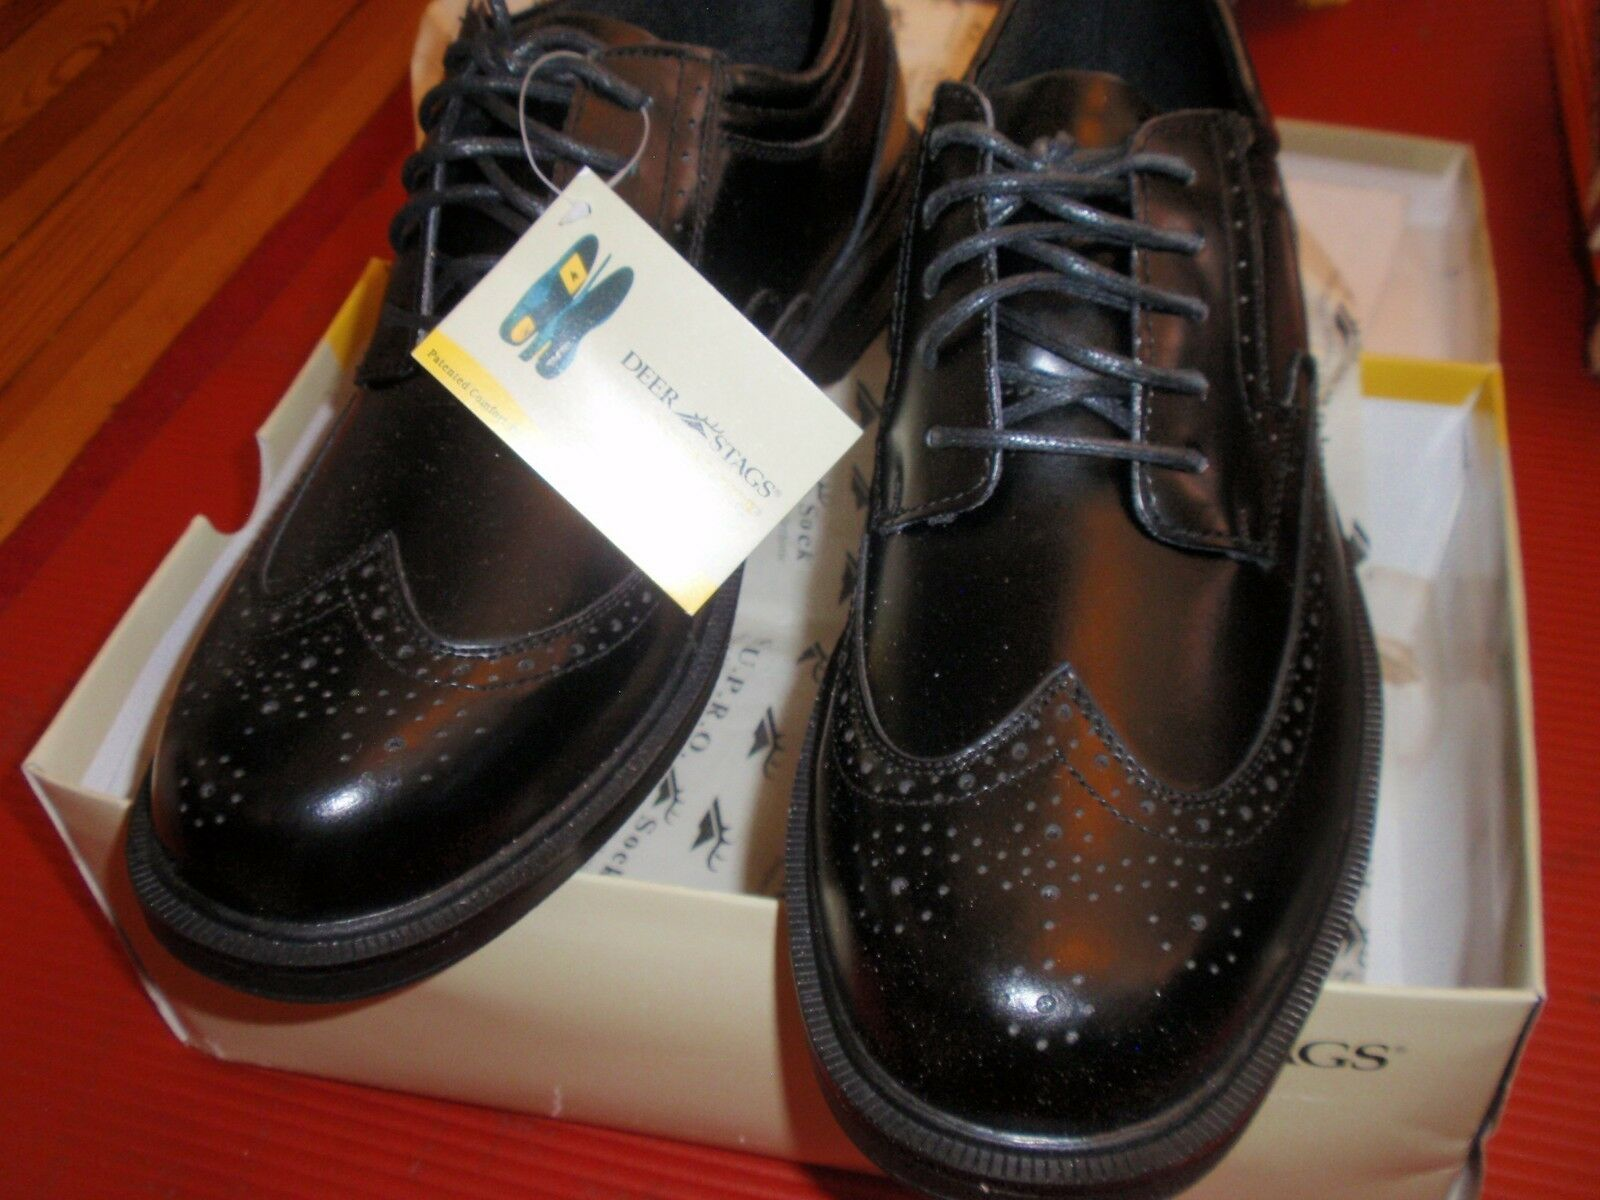 1 NEW PAIR OF MENS DEER STAGS  SIZE 13 LEATHER SHOES  BLACK SUPRO SOCK